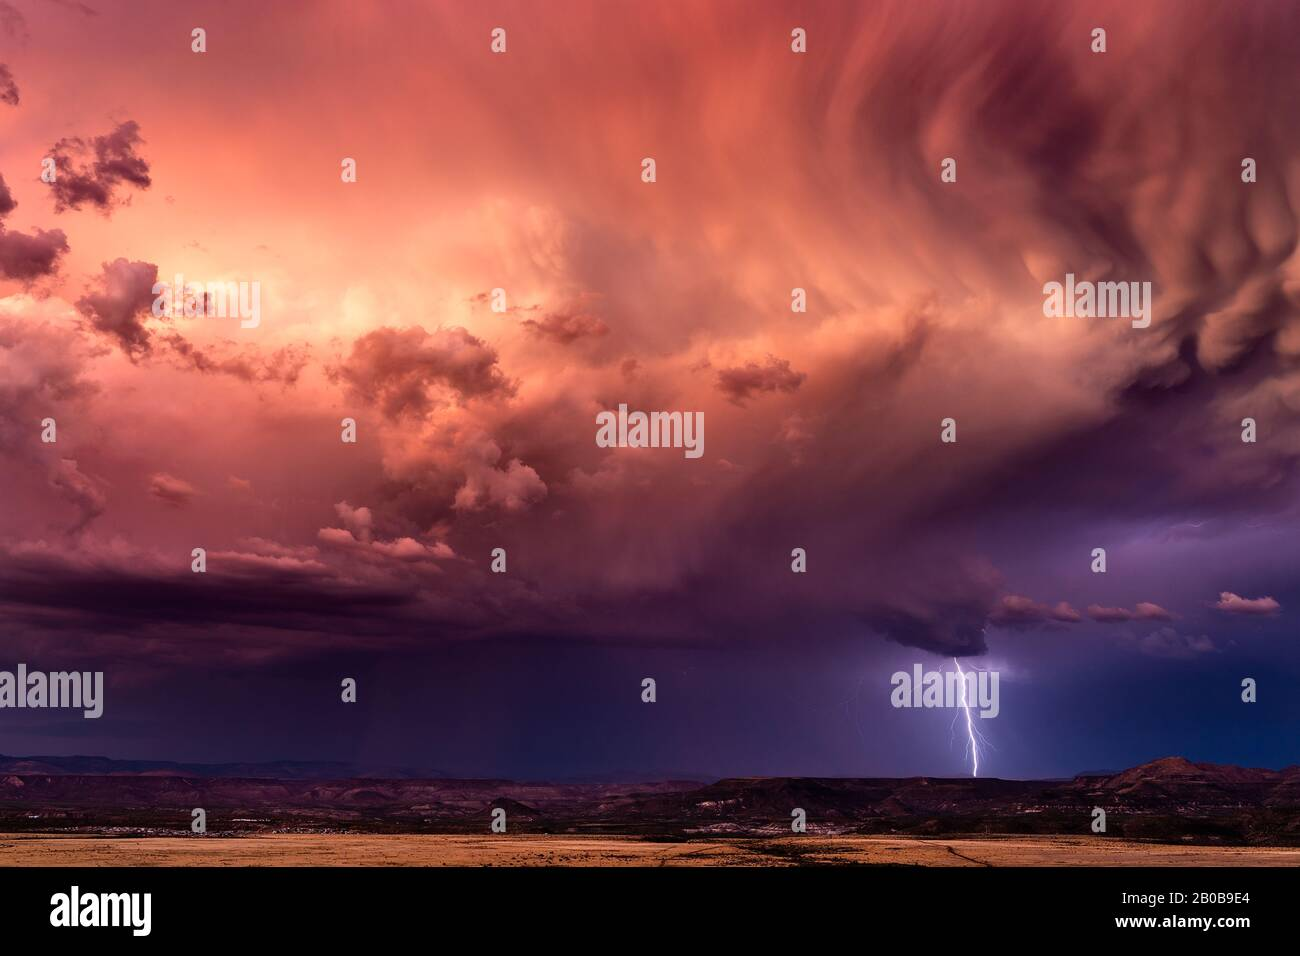 Stormy sky with dramatic clouds and lightning at sunset. Stock Photo